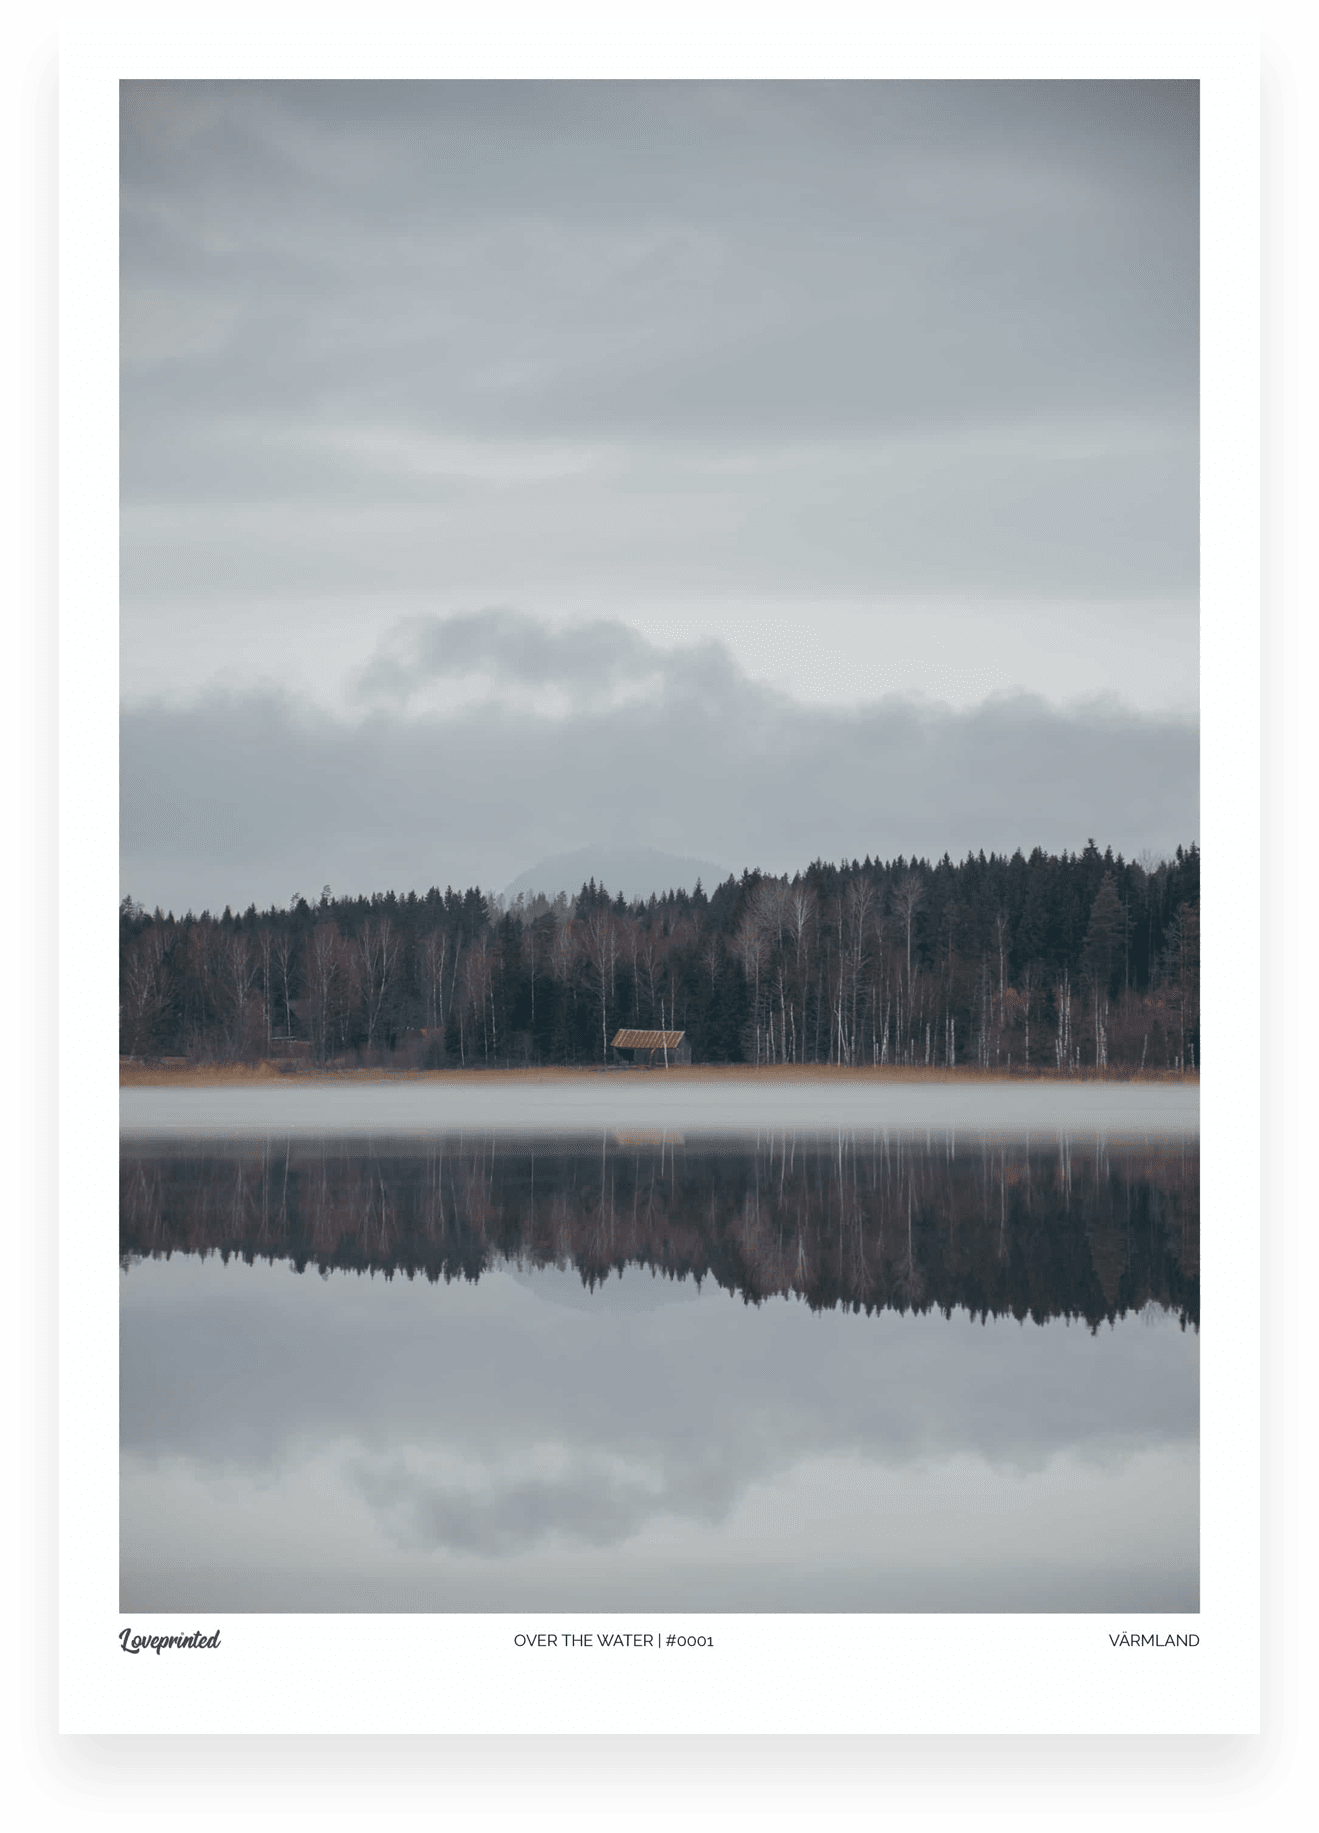 Over the water | An Image of a Swedish lake with mist floating over it made by Loveprinted